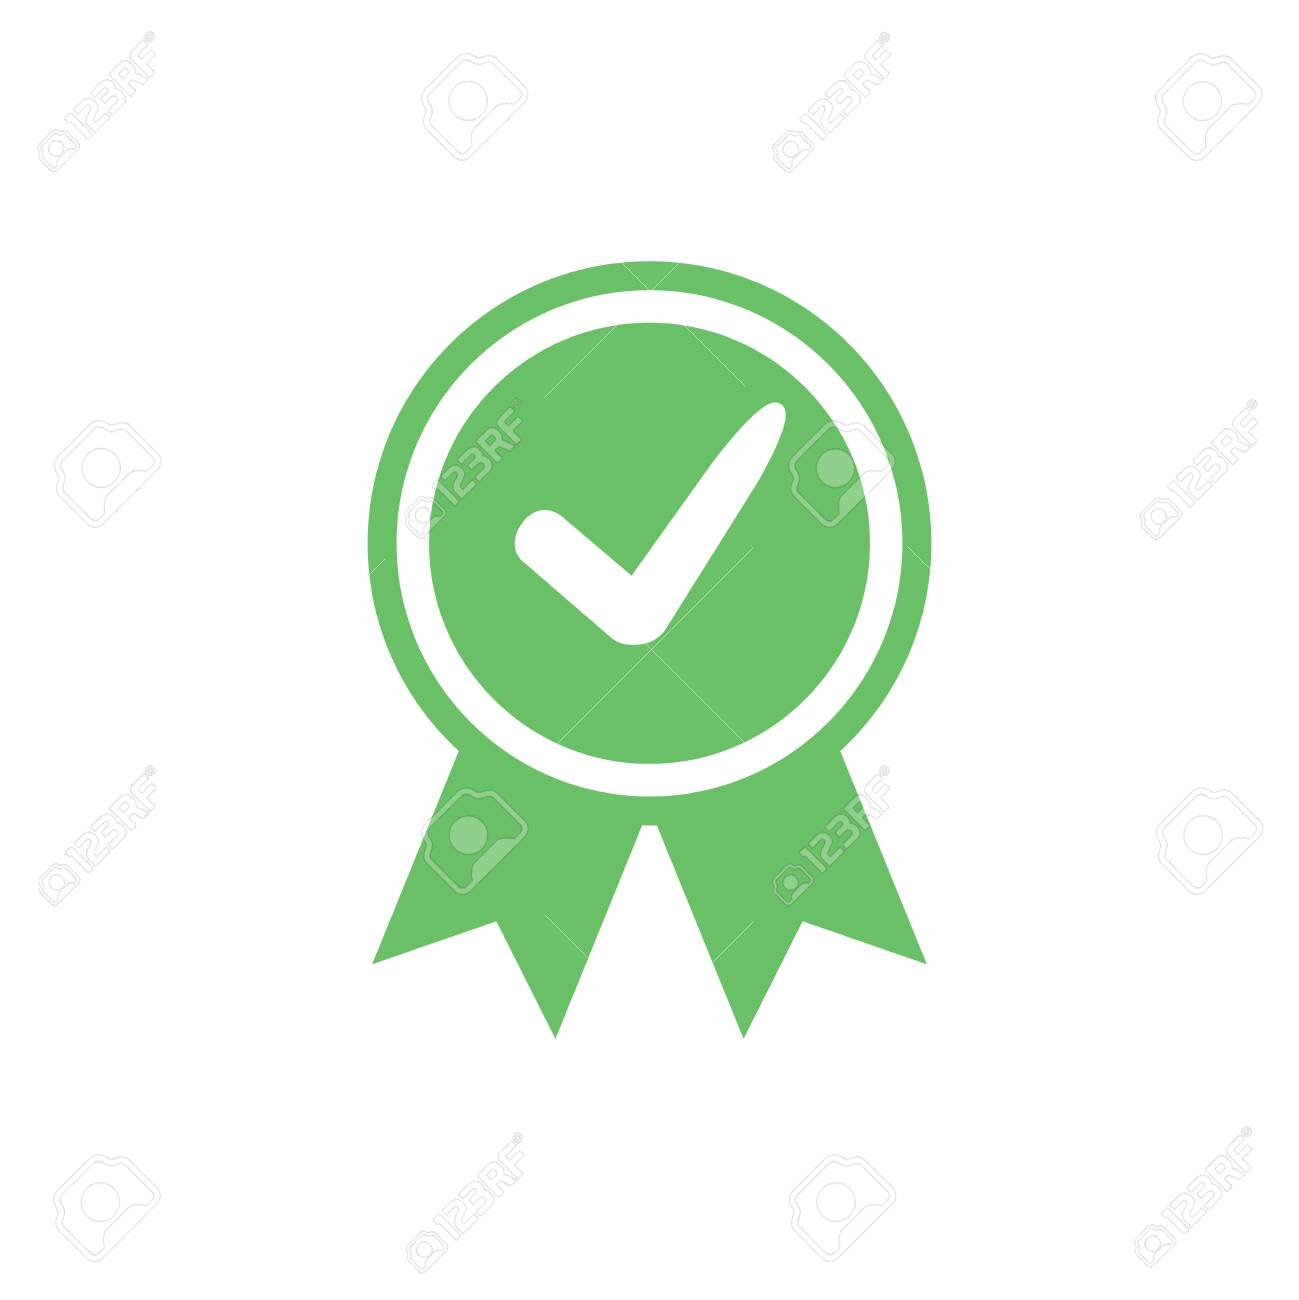 Approved certified icon. Certified seal icon. Accepted accreditation symbol with checkmark. Assurance or authorized - 132207294